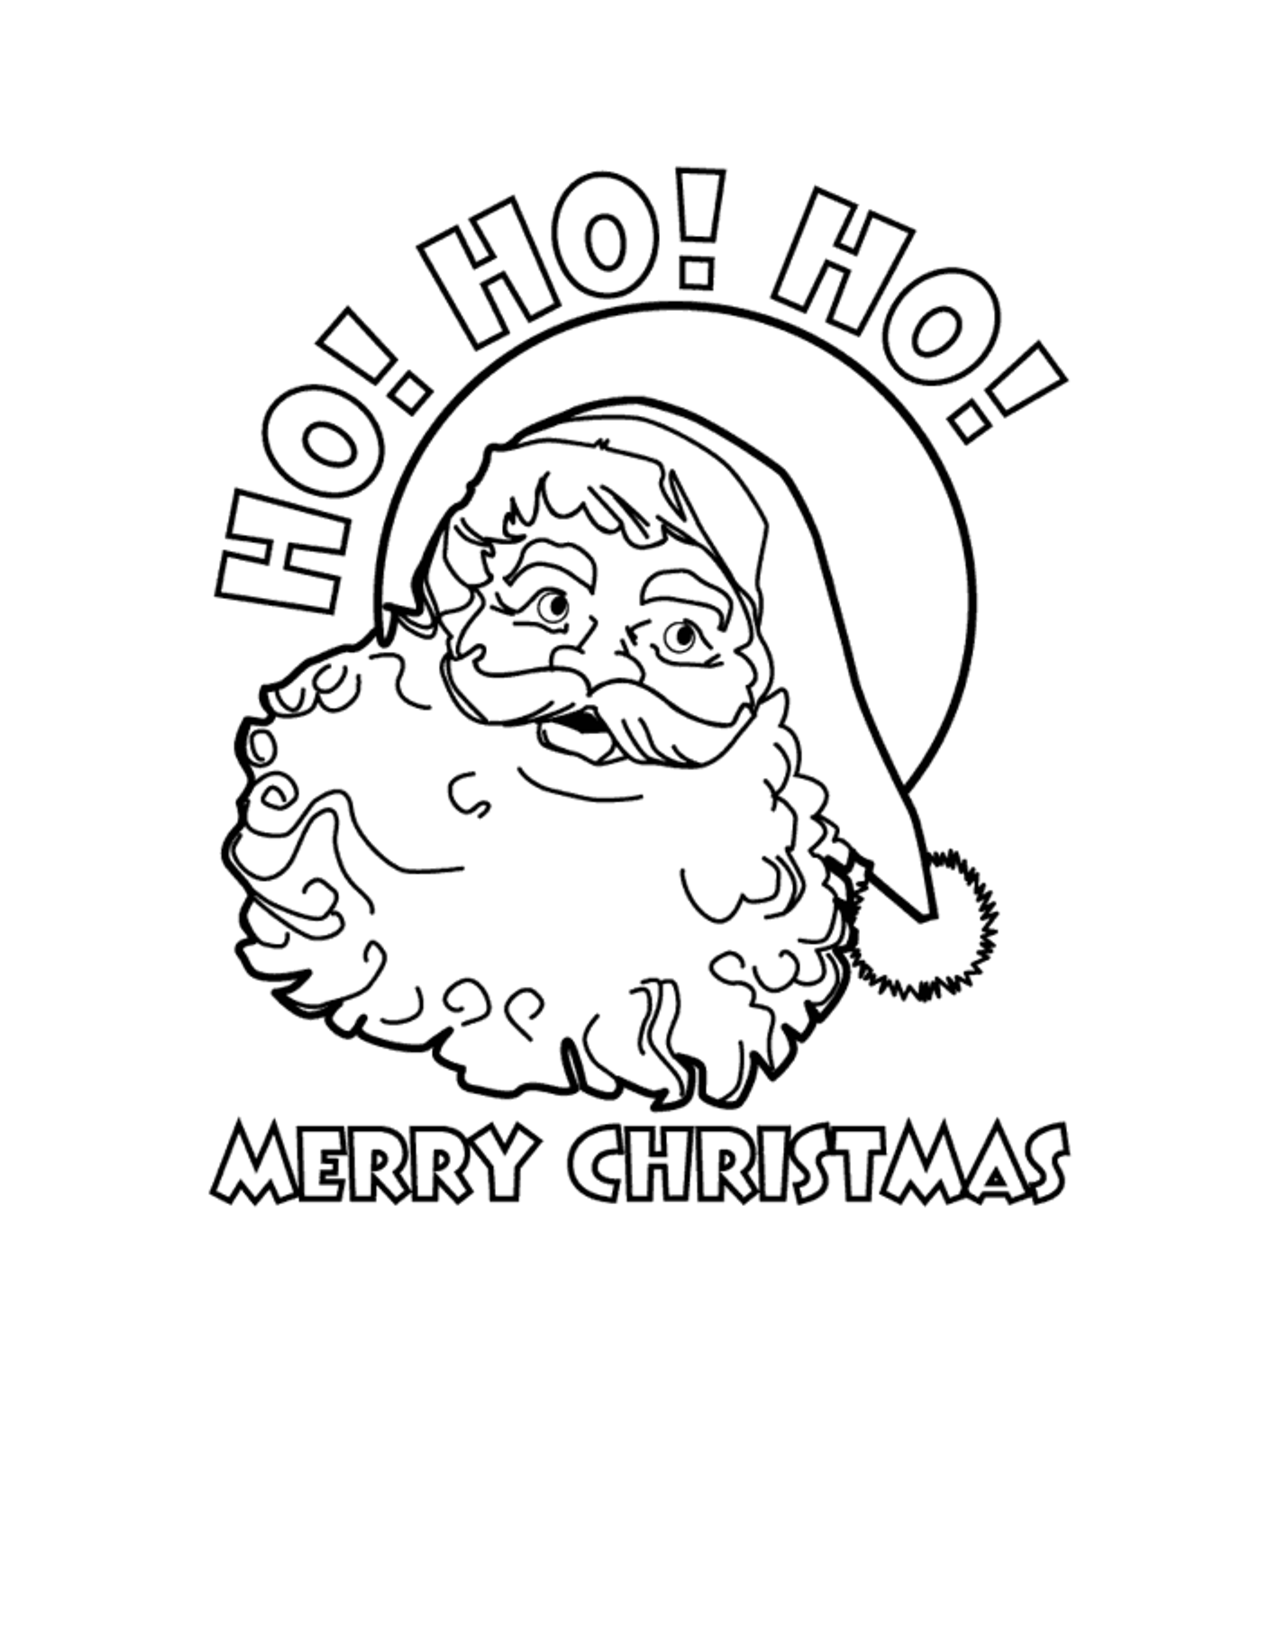 Coloring pages printable free christmas - Merry Christmas Printable Coloring Pages Ho Ho Ho Merry Christmas Santa Free Printable Coloring Sheet